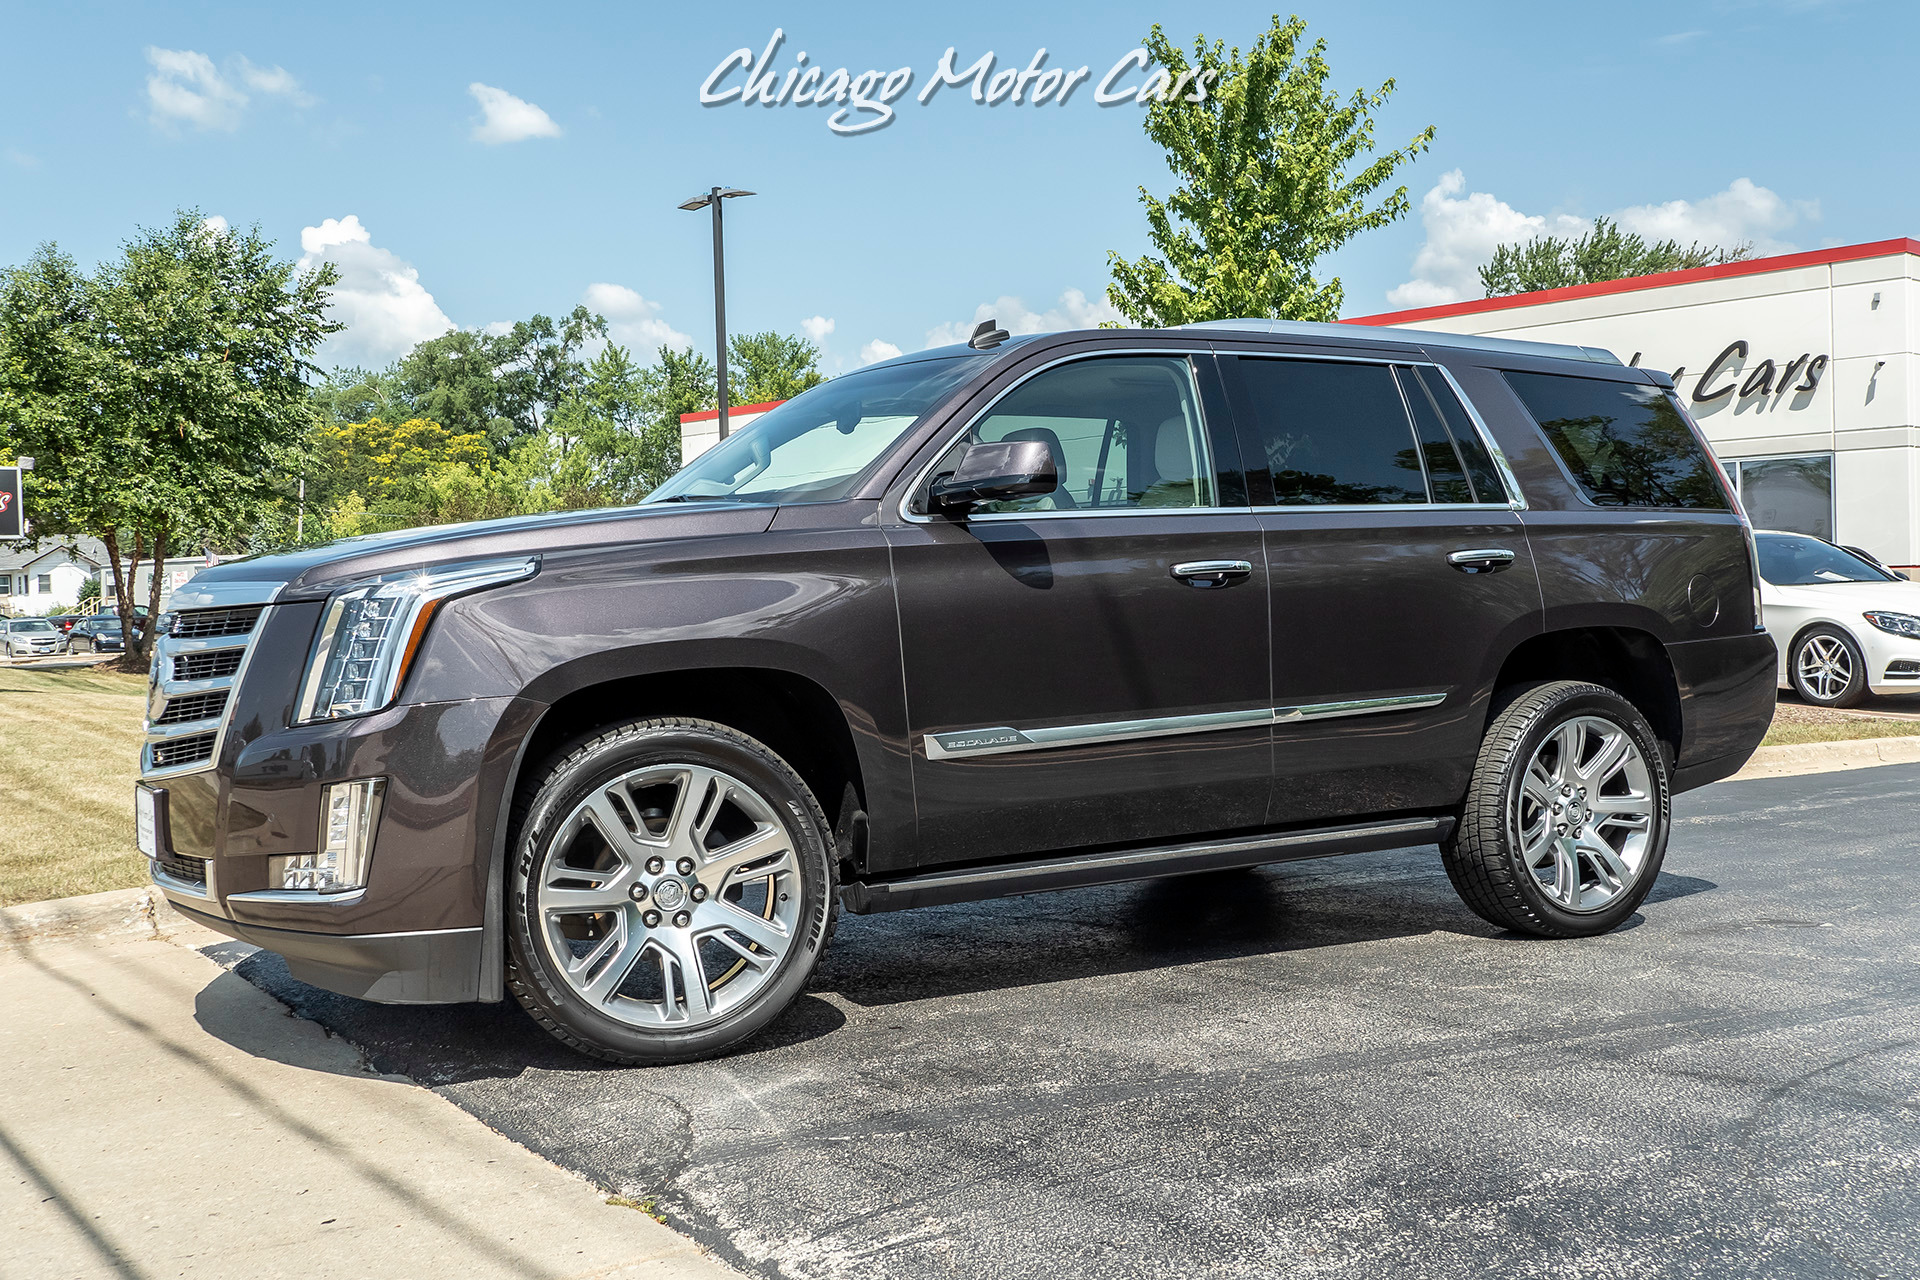 Used-2015-Cadillac-Escalade-Premium-AWD-SUV-FACTORY-LOADED-POWER-RETRACTABLE-SIDE-STEPS